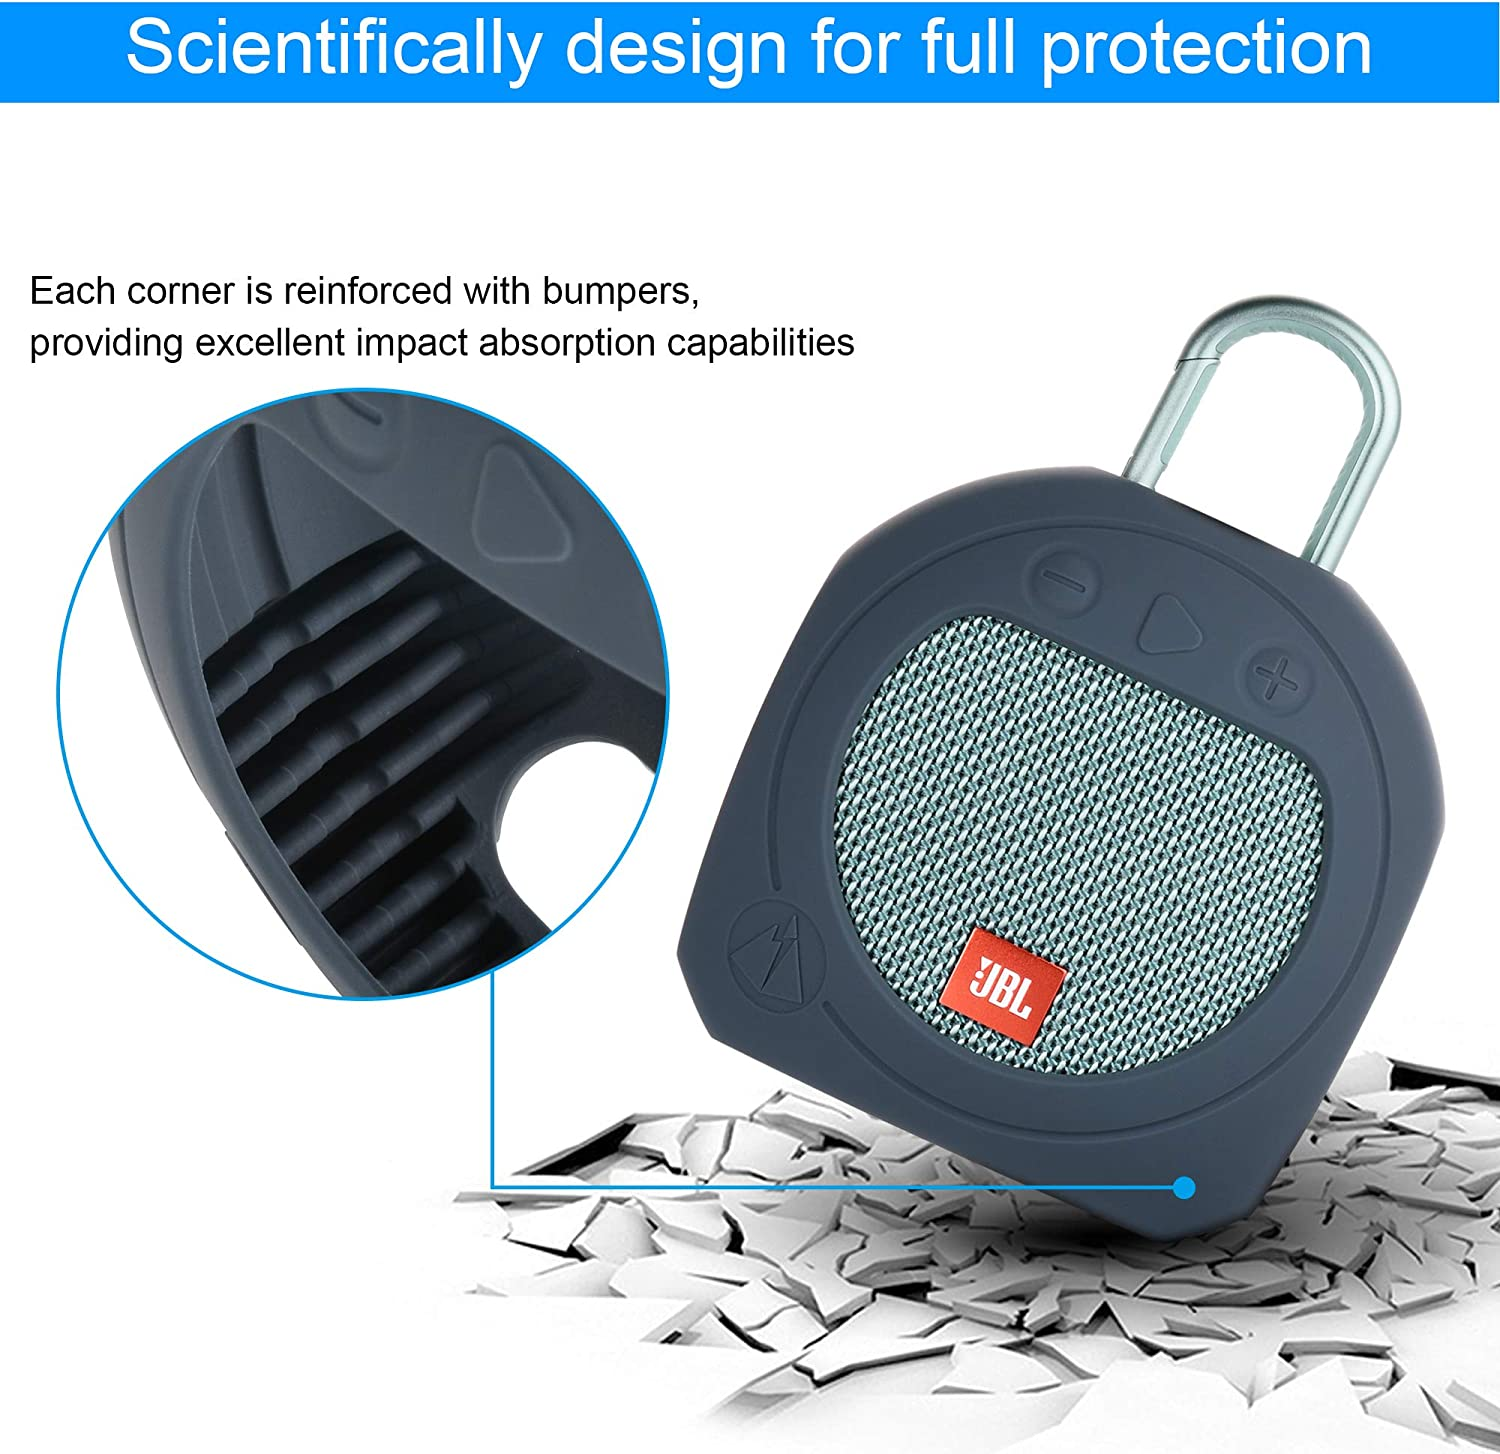 Black TXEsign Protective Silicone Stand Up Carrying Case for JBL Clip 3 Waterproof Portable Bluetooth Speaker